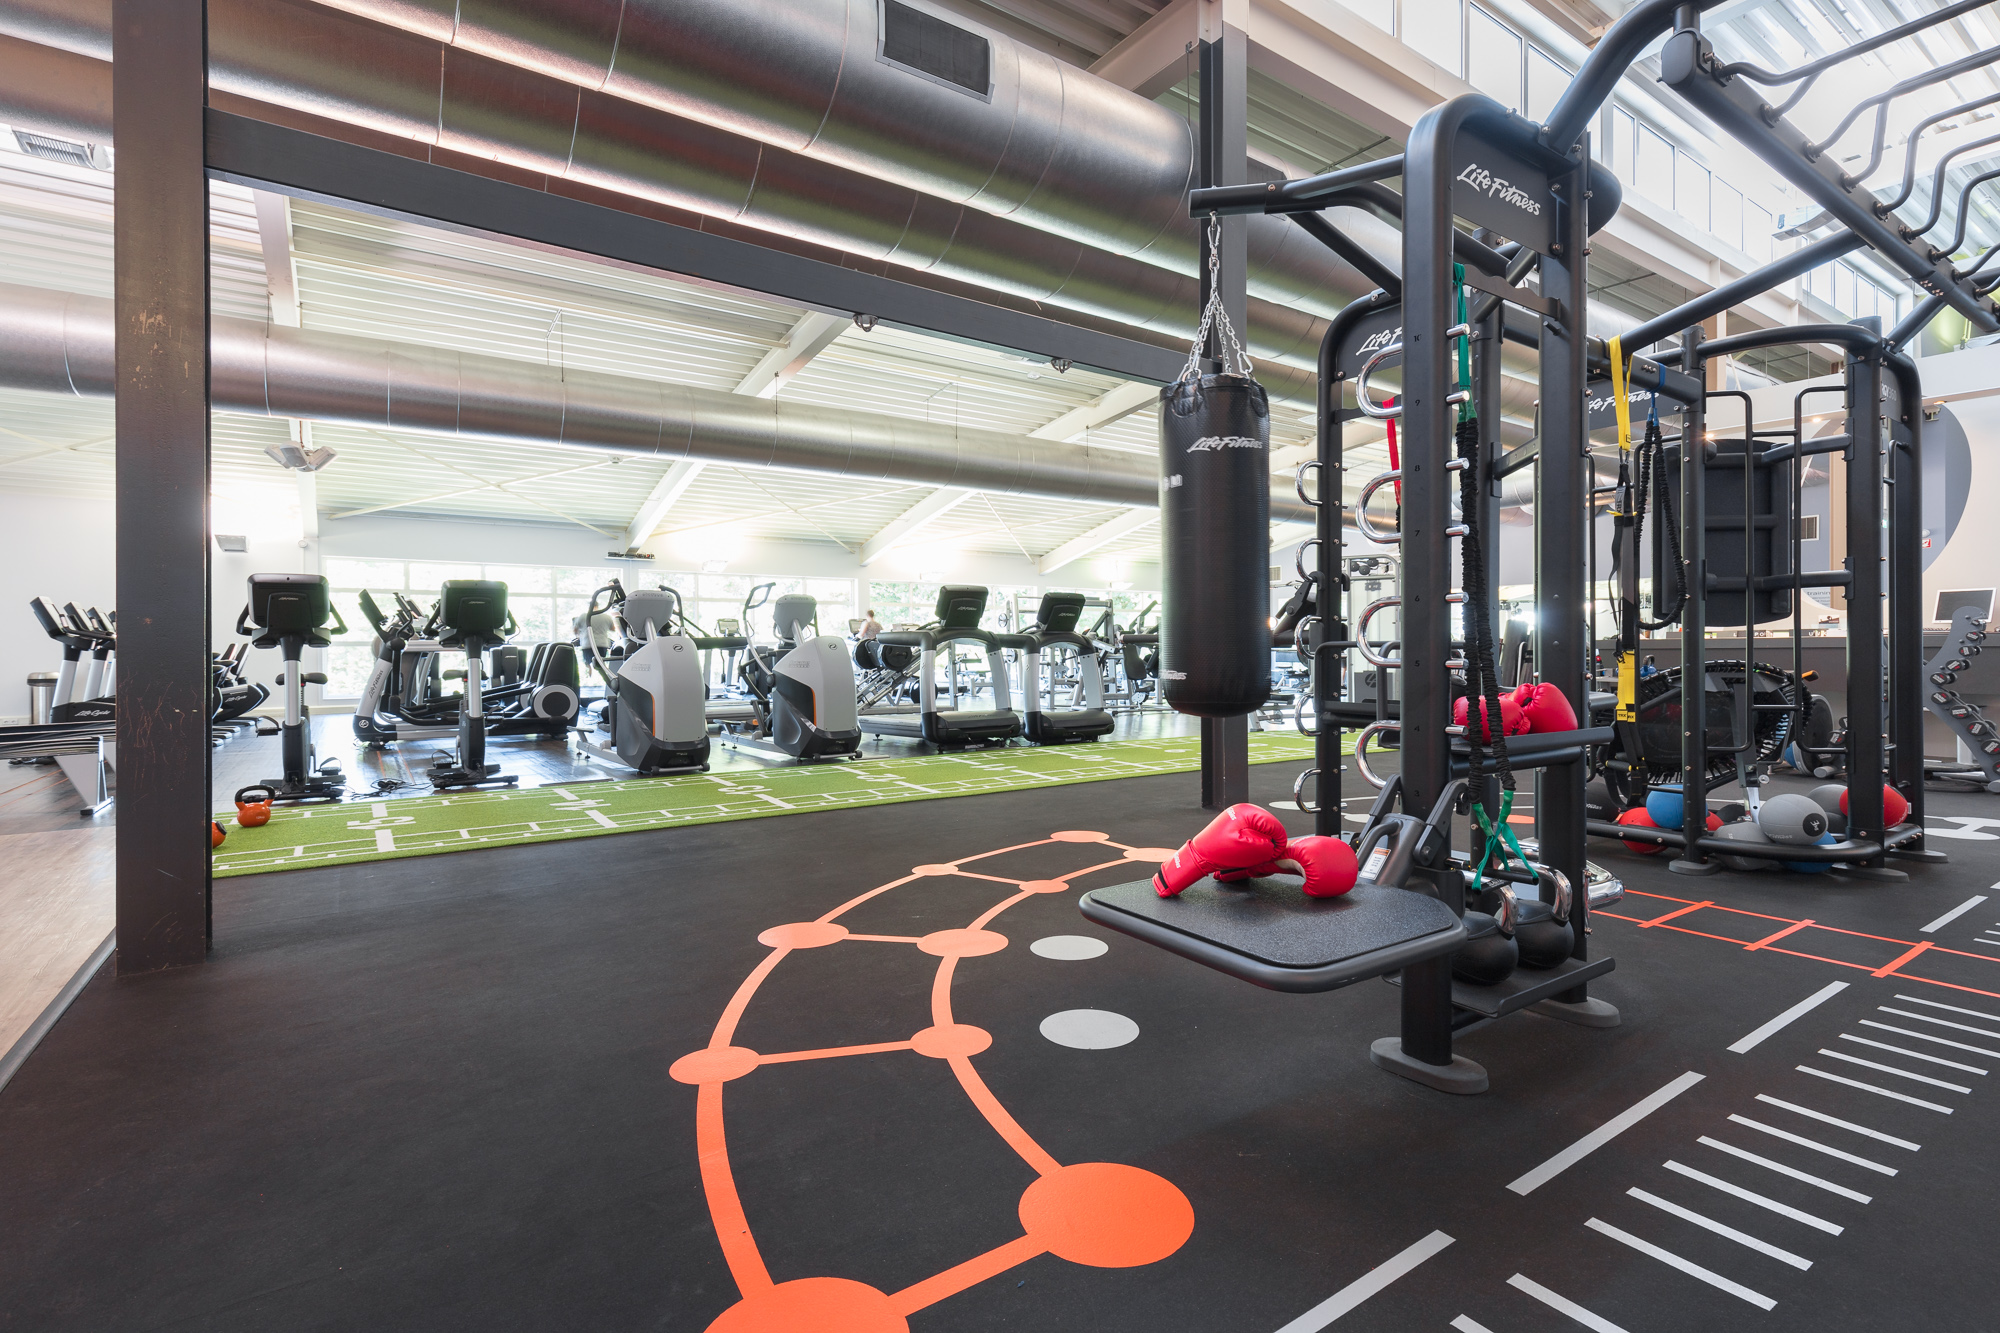 Image of Synrgy area at David Lloyd Eindhoven